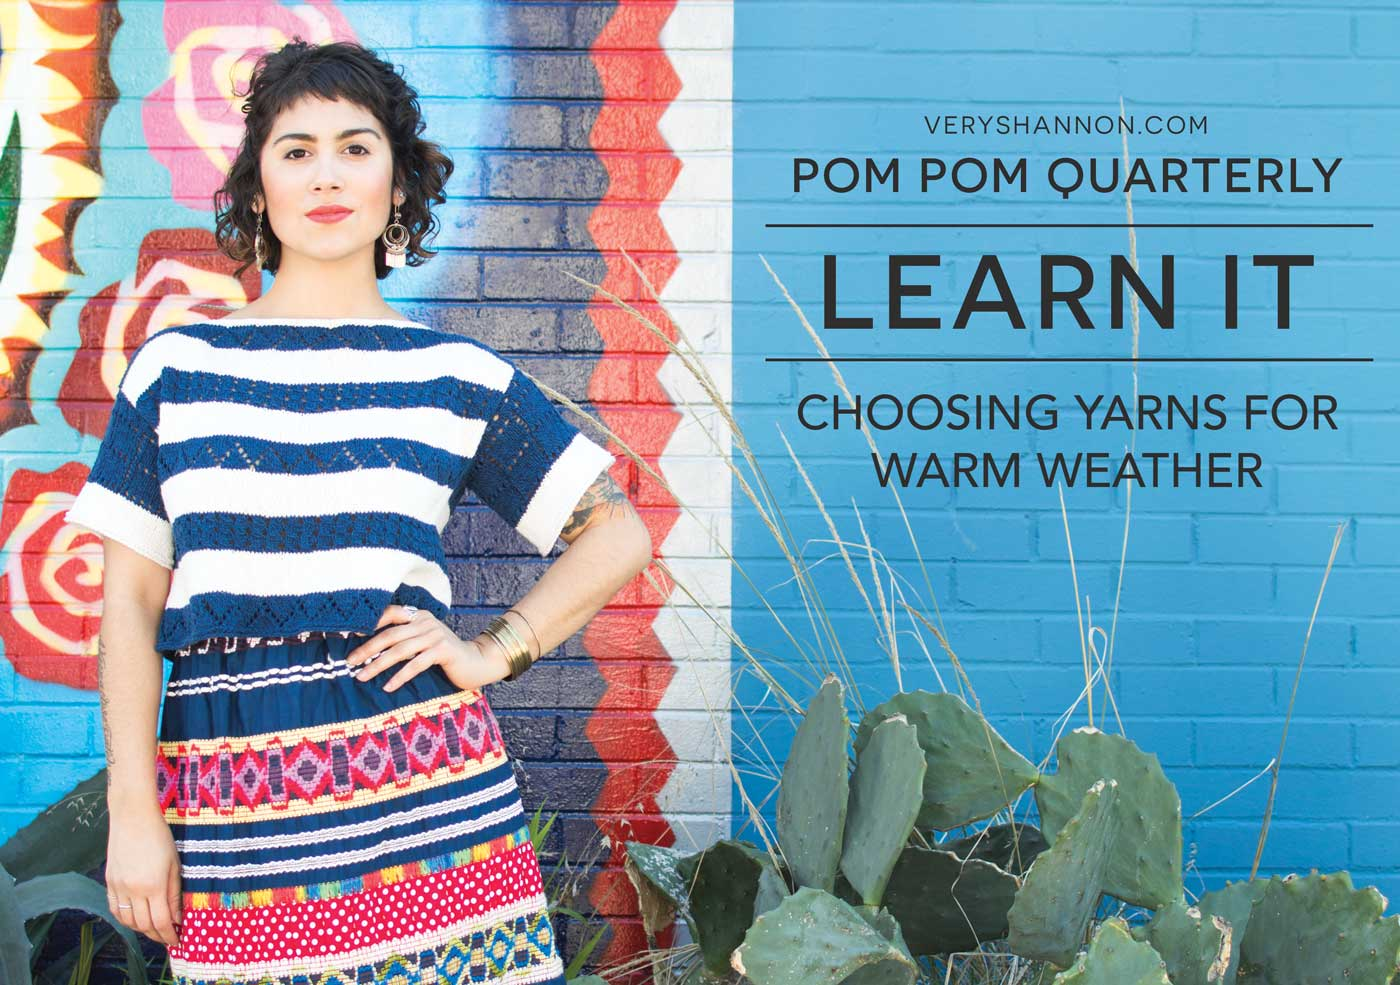 POM POM QUARTERLY CHOOSING YARNS FOR WARMER WEATHER.JPG